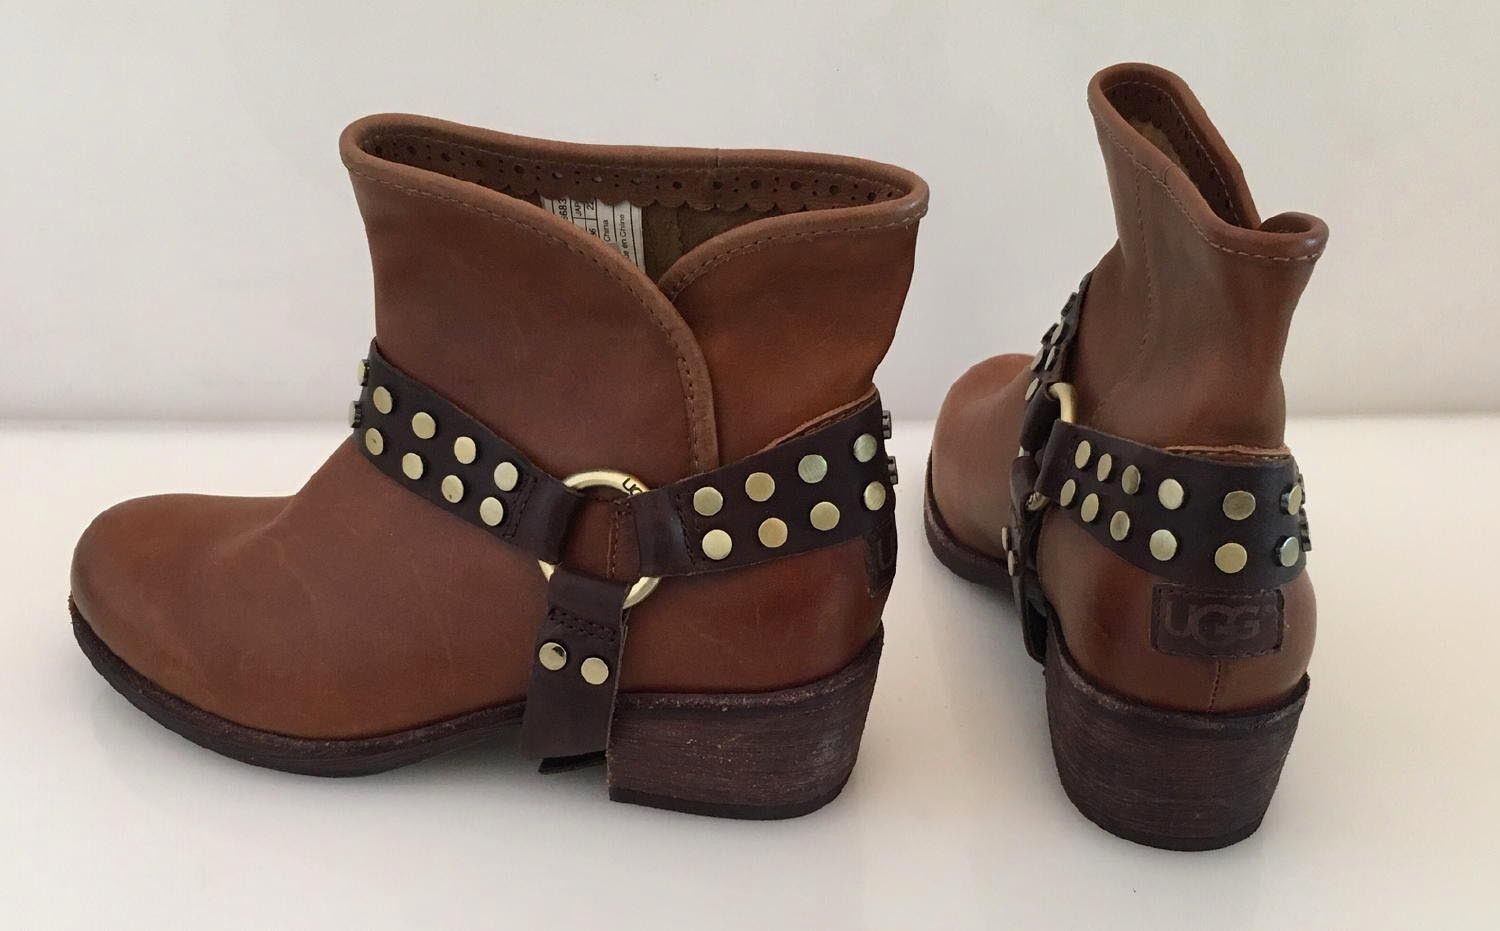 UGG Australia Womens Darling Harness Leather Ankle Boots Whiskey Brown Size 5